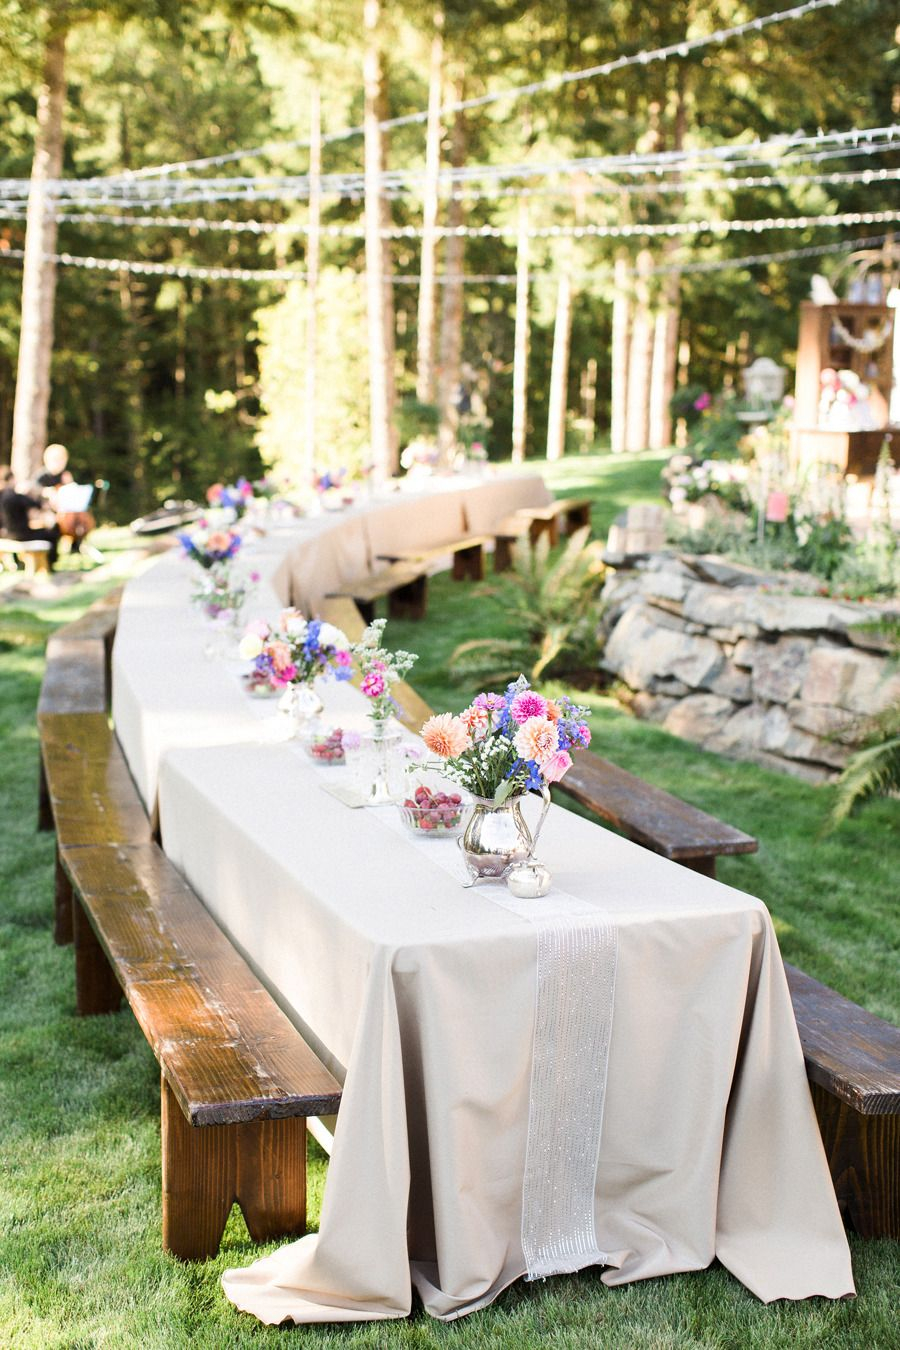 Diy Backyard Oregon Wedding Boho Wedding Backyard Wedding regarding DIY Backyard Wedding Decorations